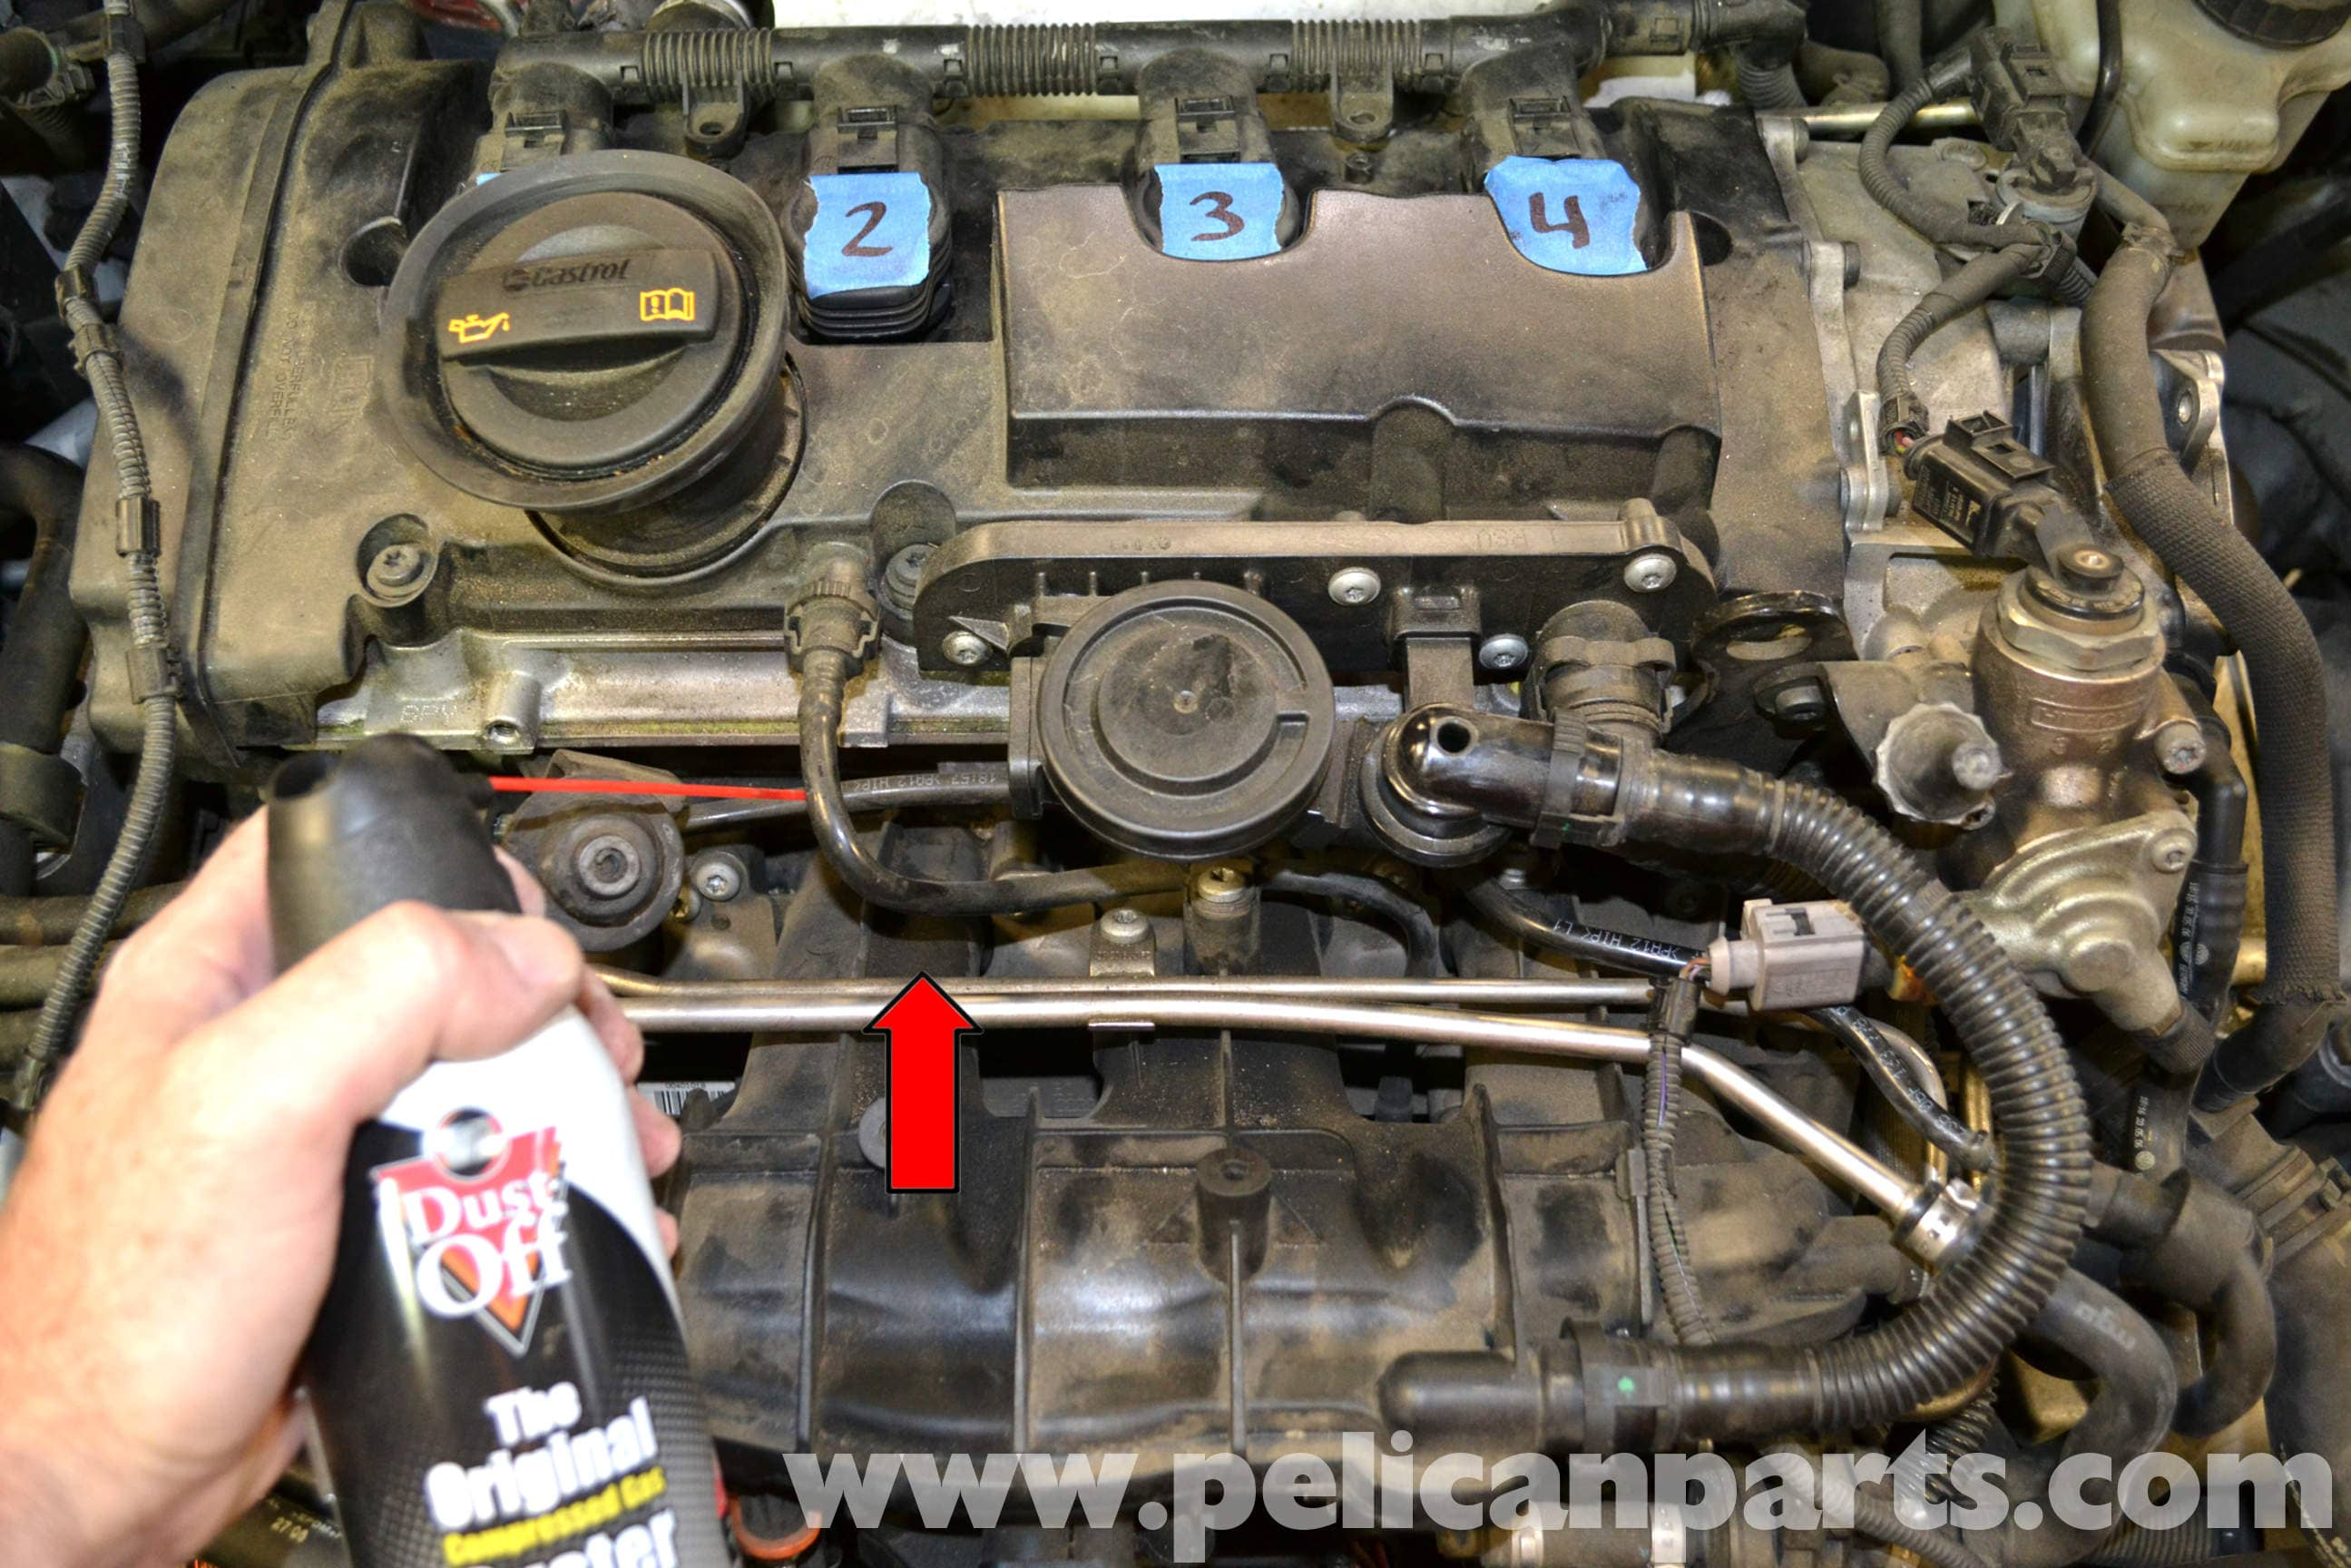 Volkswagen Golf GTI Mk V Intake Manifold Removal (2006-2009) - Pelican Parts DIY Maintenance Article